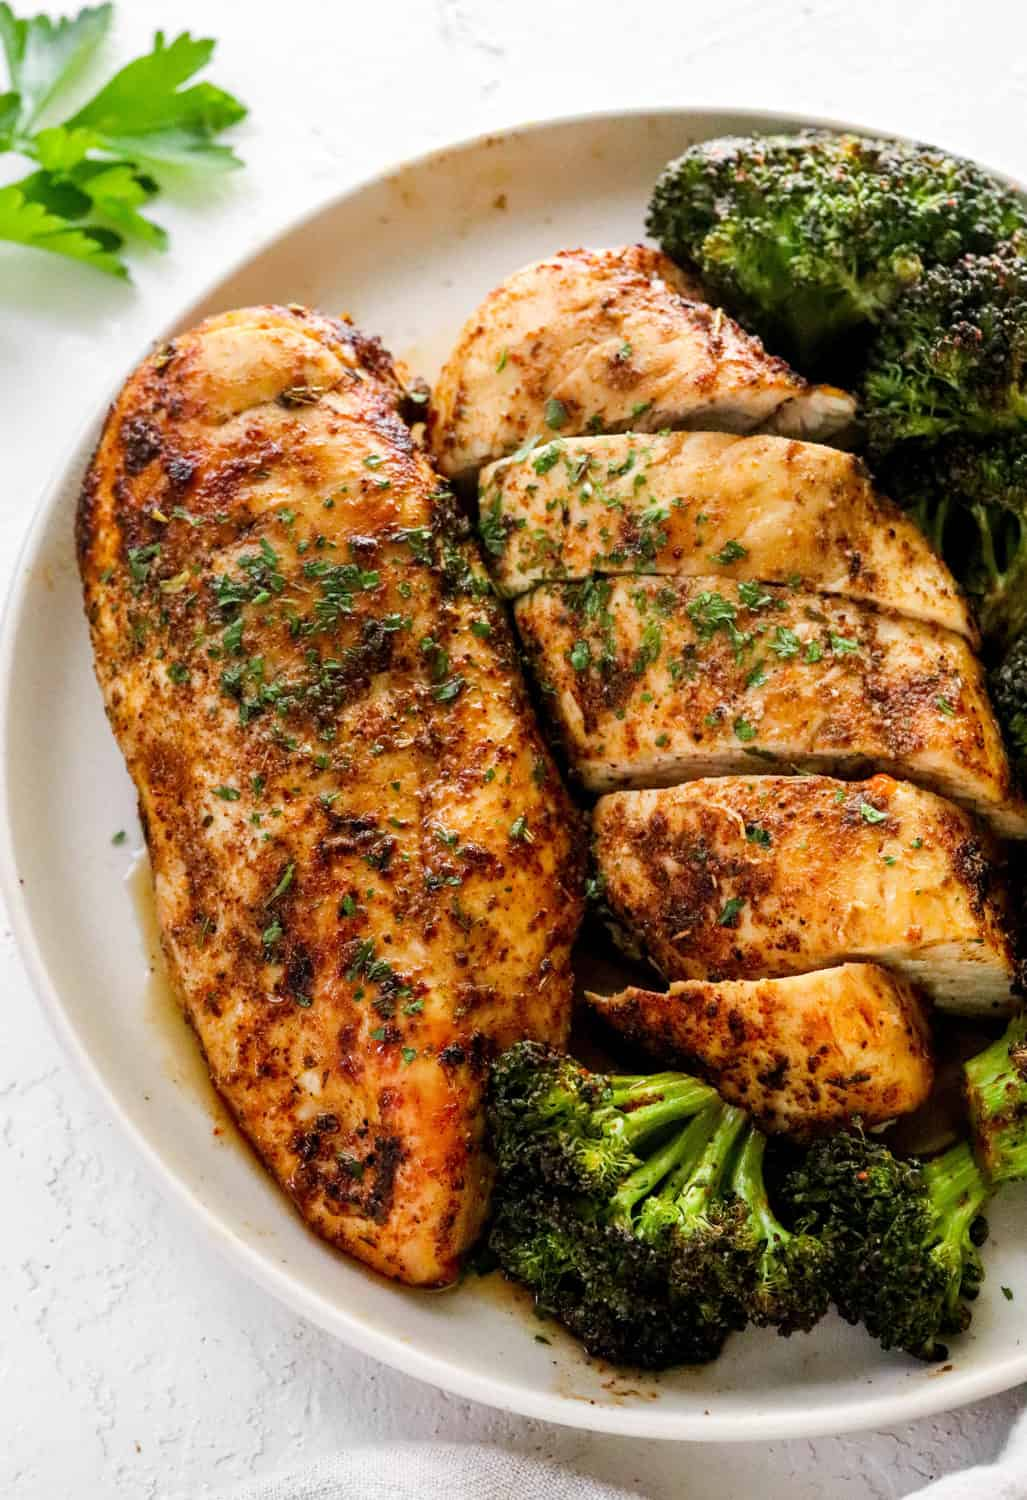 Close up of juicy chicken breast with seasoning on it and roasted broccoli around it on a round white plate on top of a white textured surface